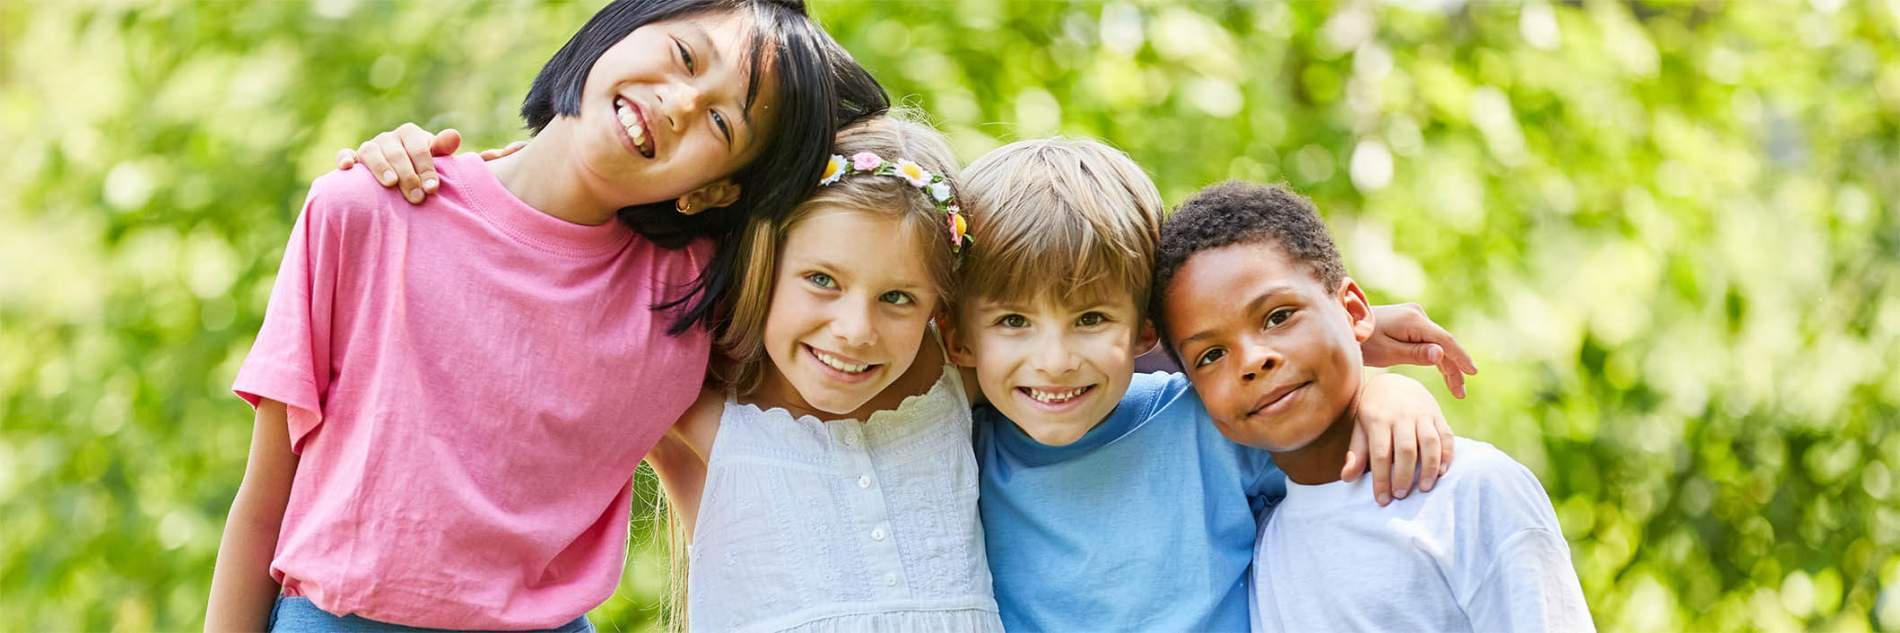 Four children smiling outdoors